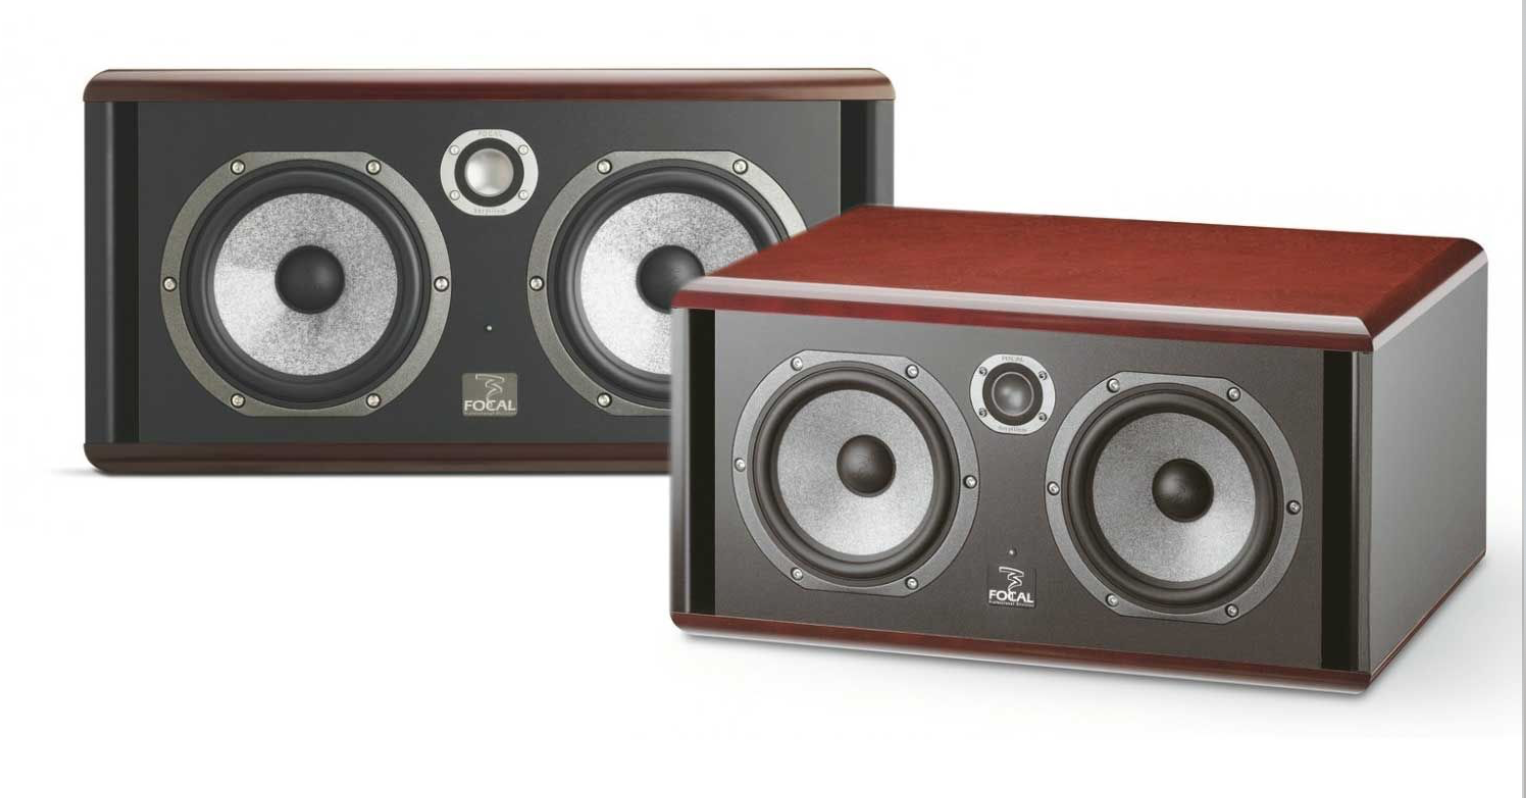 2 FOCAL TWIN6 BE MONITORS